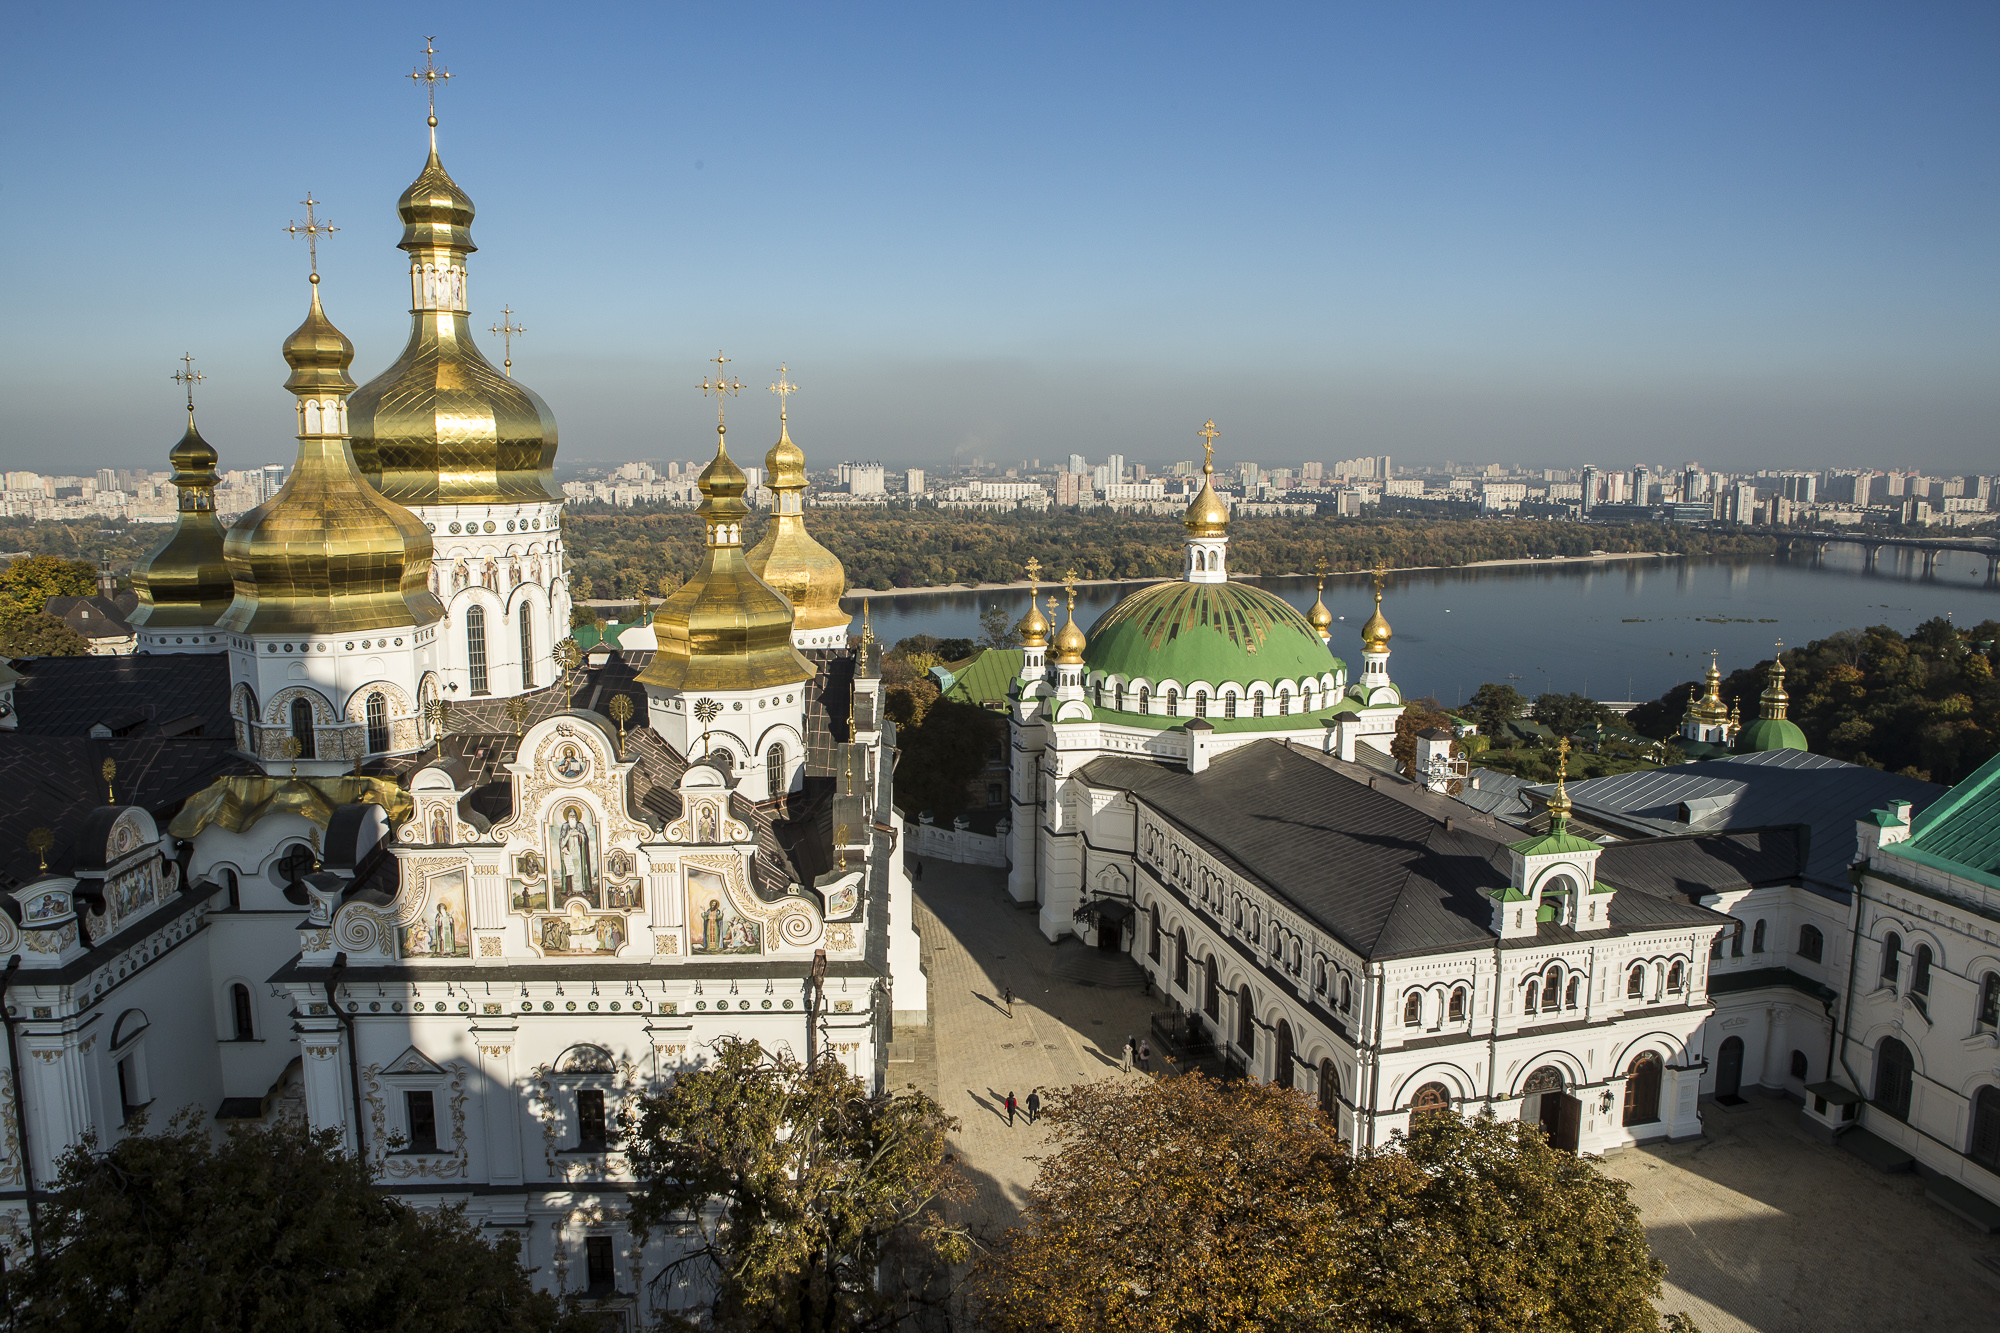 The Holy Dormition Cathedral, left, and the Refectory Church of Sts. Anthony and Theodosius as seen from the Great Lavra Bell Tower at the Kyiv-Pechersk Lavra on Wednesday, October 10, 2018 in Kyiv, Ukraine.